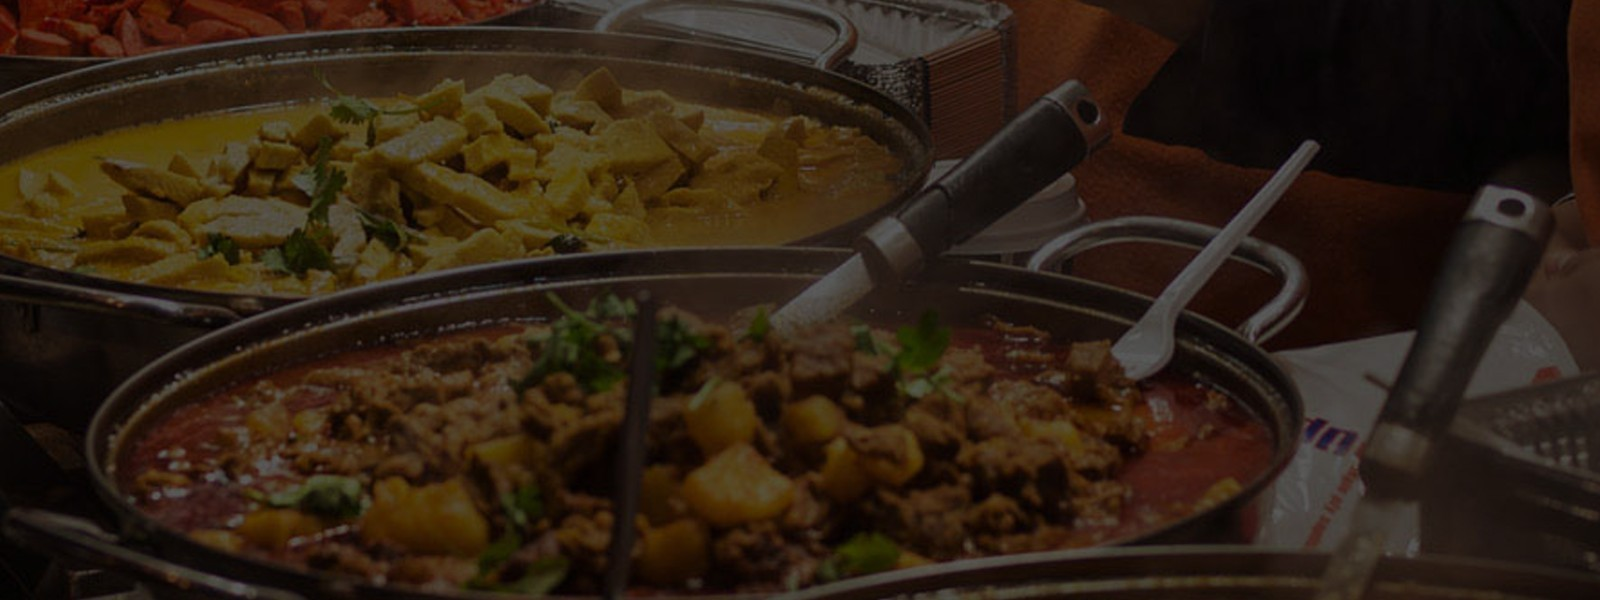 SUMMER SPECIAL LUNCH BUFFET $14.95 11:30 AM to 2:30 PM Salads, Coolers, Appetizers, Mains, Butter chicken, Desserts